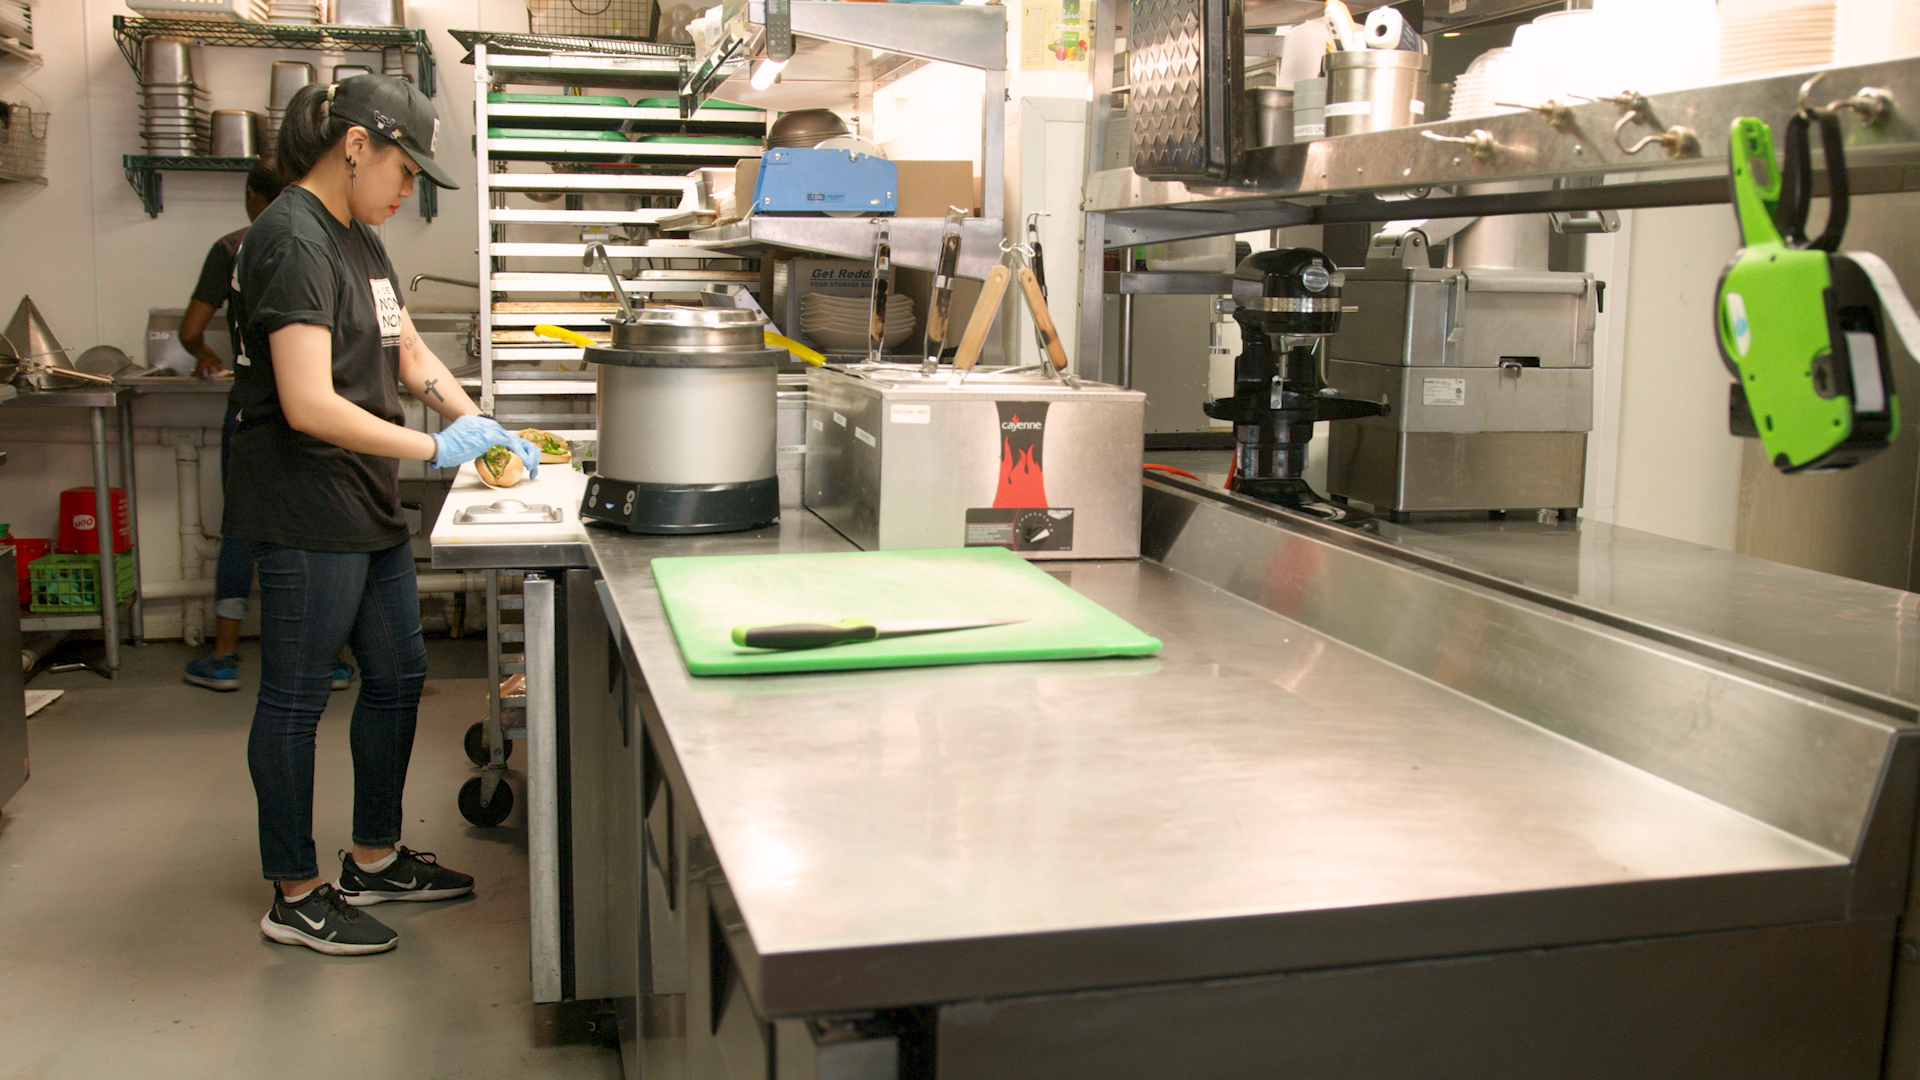 Staff in working in back-of-house prep kitchen in a quick service restaurant